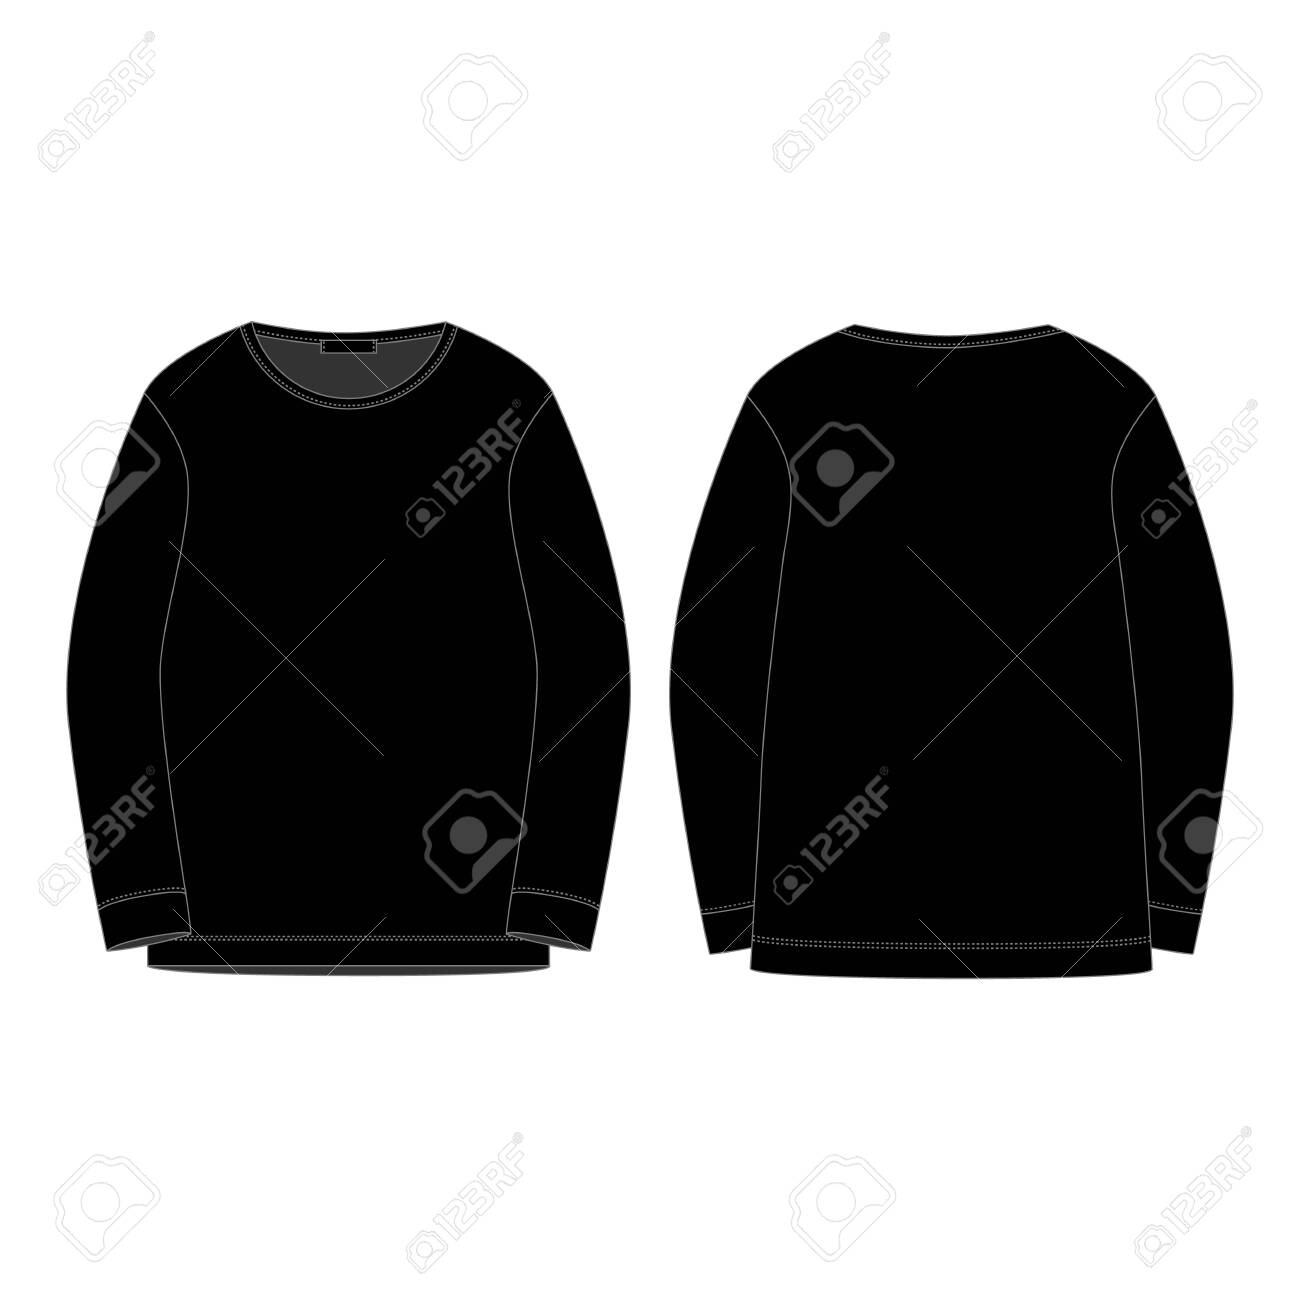 Black sweatshirt isolated isolated on white background. Front and back technical sketch. Sportswear, casual urban style. Fashion vector illustration - 141641826